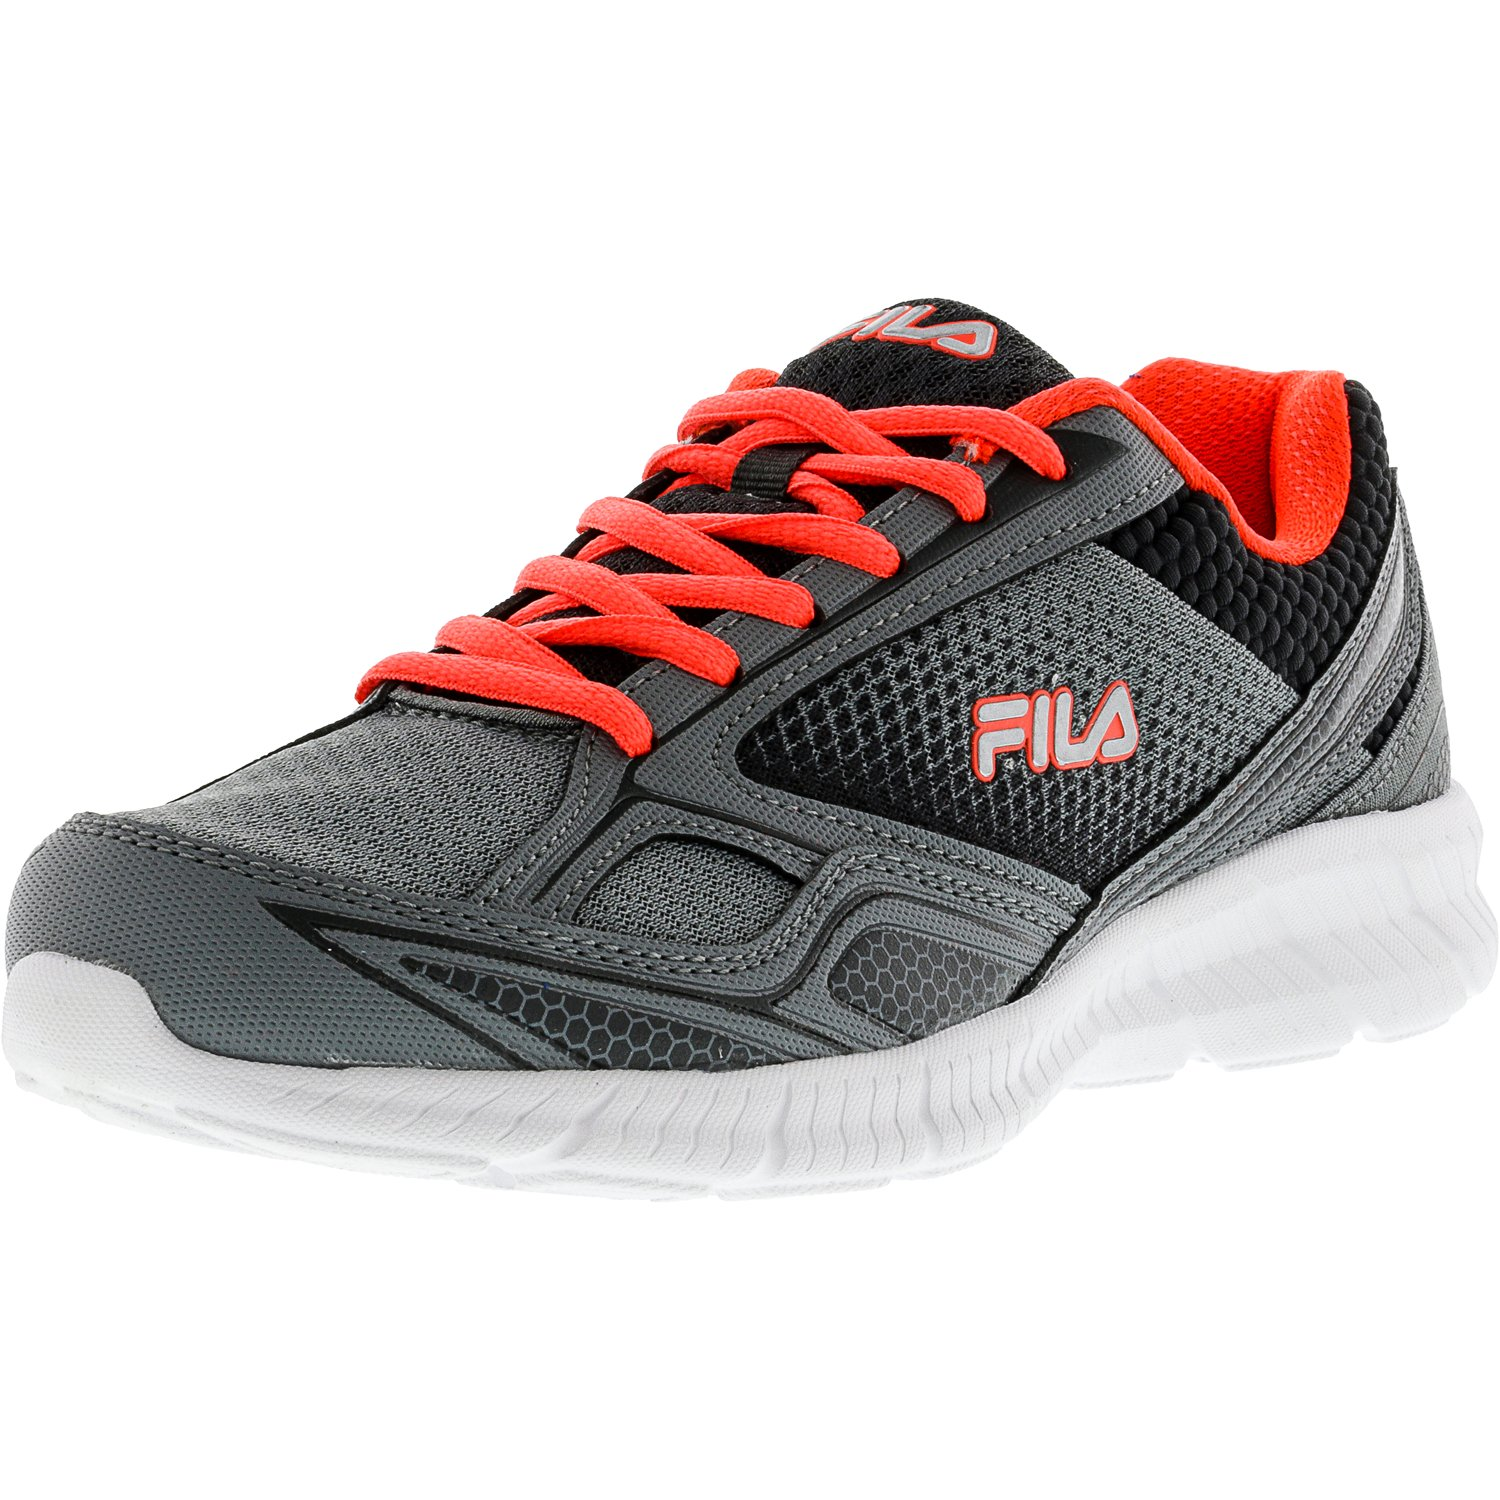 Fila Women's Memory Deluxe 17 High Rise   Royal Blue Knockout Pink Ankle-High Running Shoe 7M by Fila